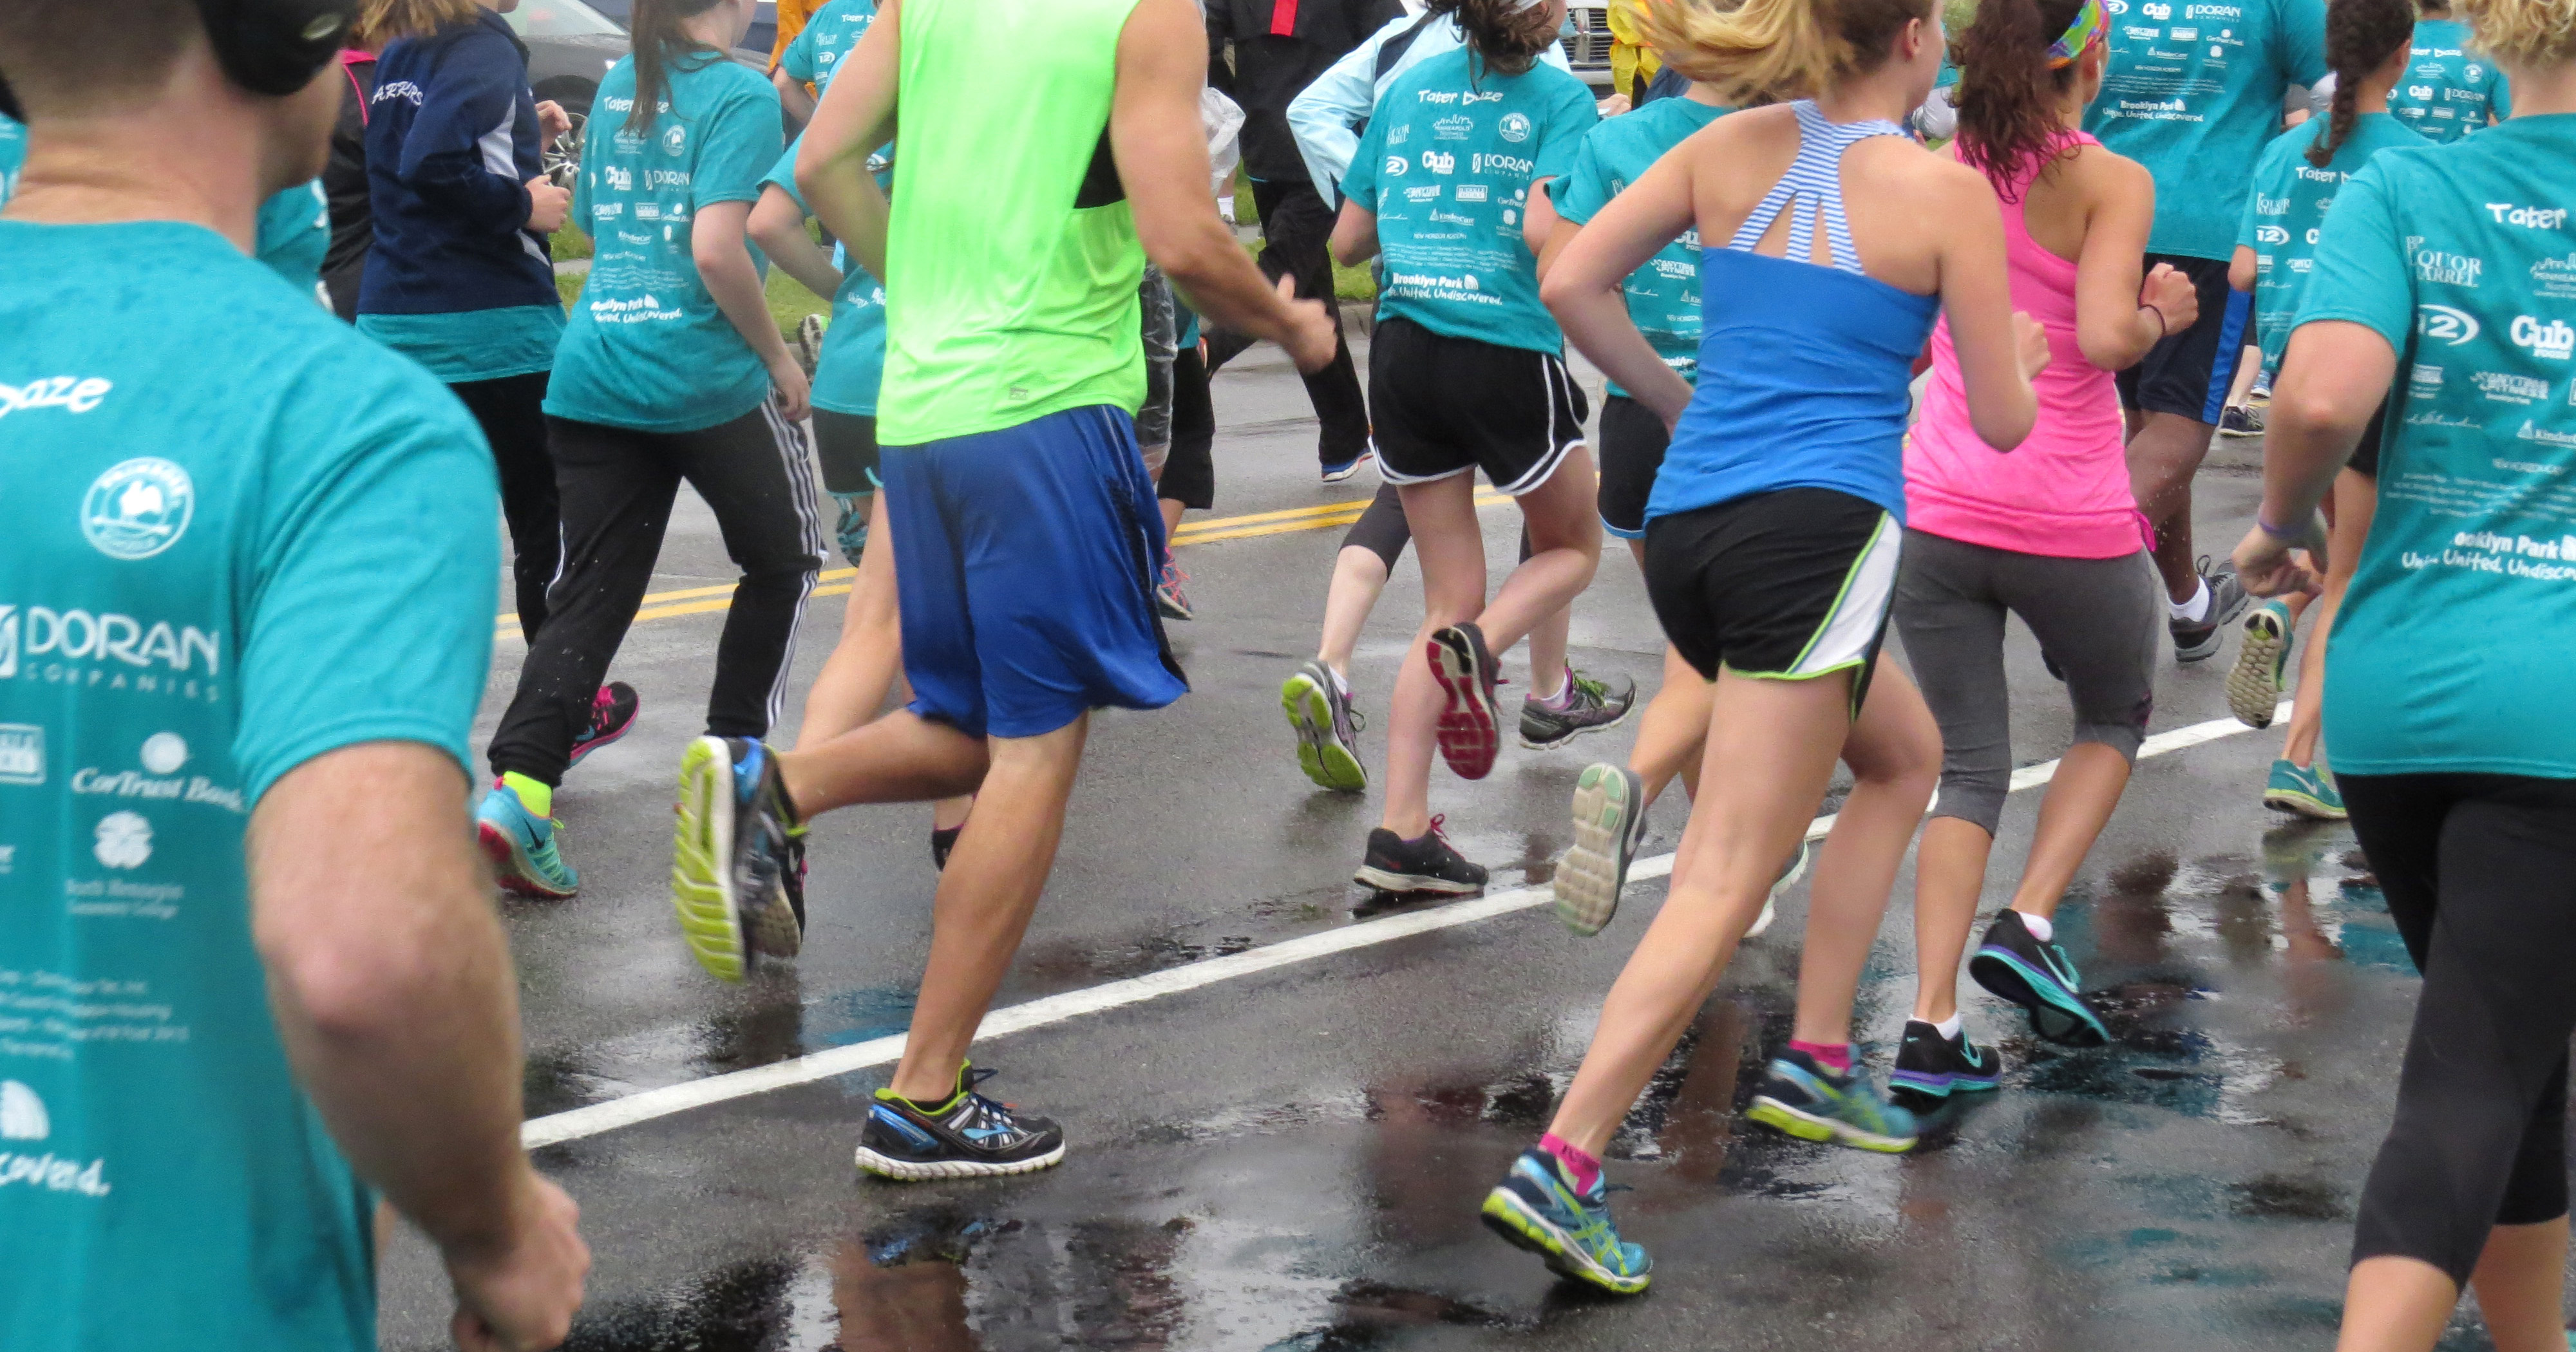 Legs of people running in the annual spud run.